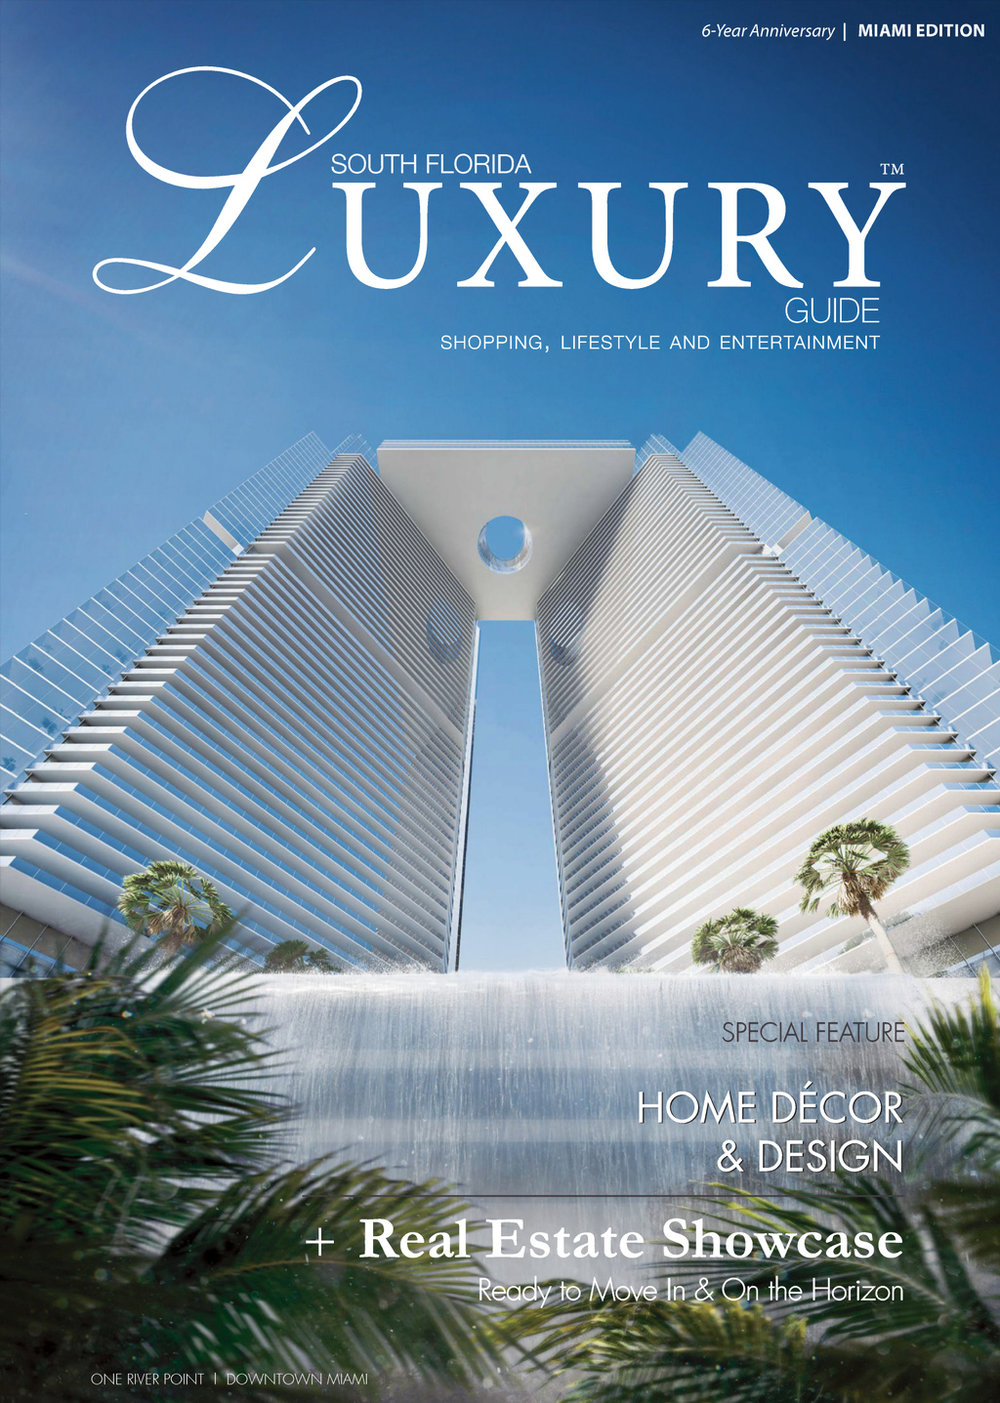 Luxury South Florida Guide